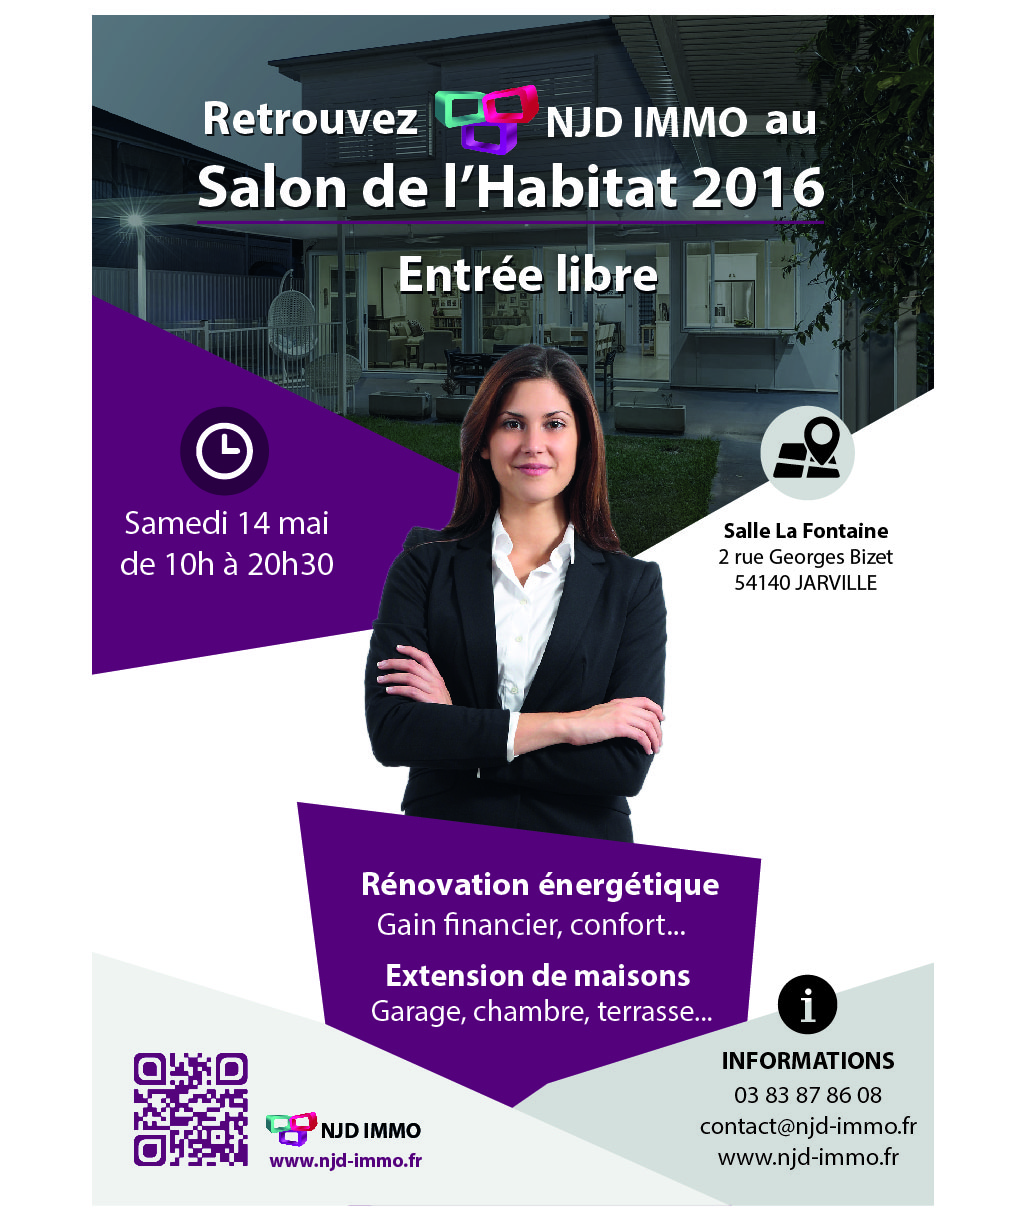 Salon de l 39 habitat 2016 jarville la for Salon de la photo 2016